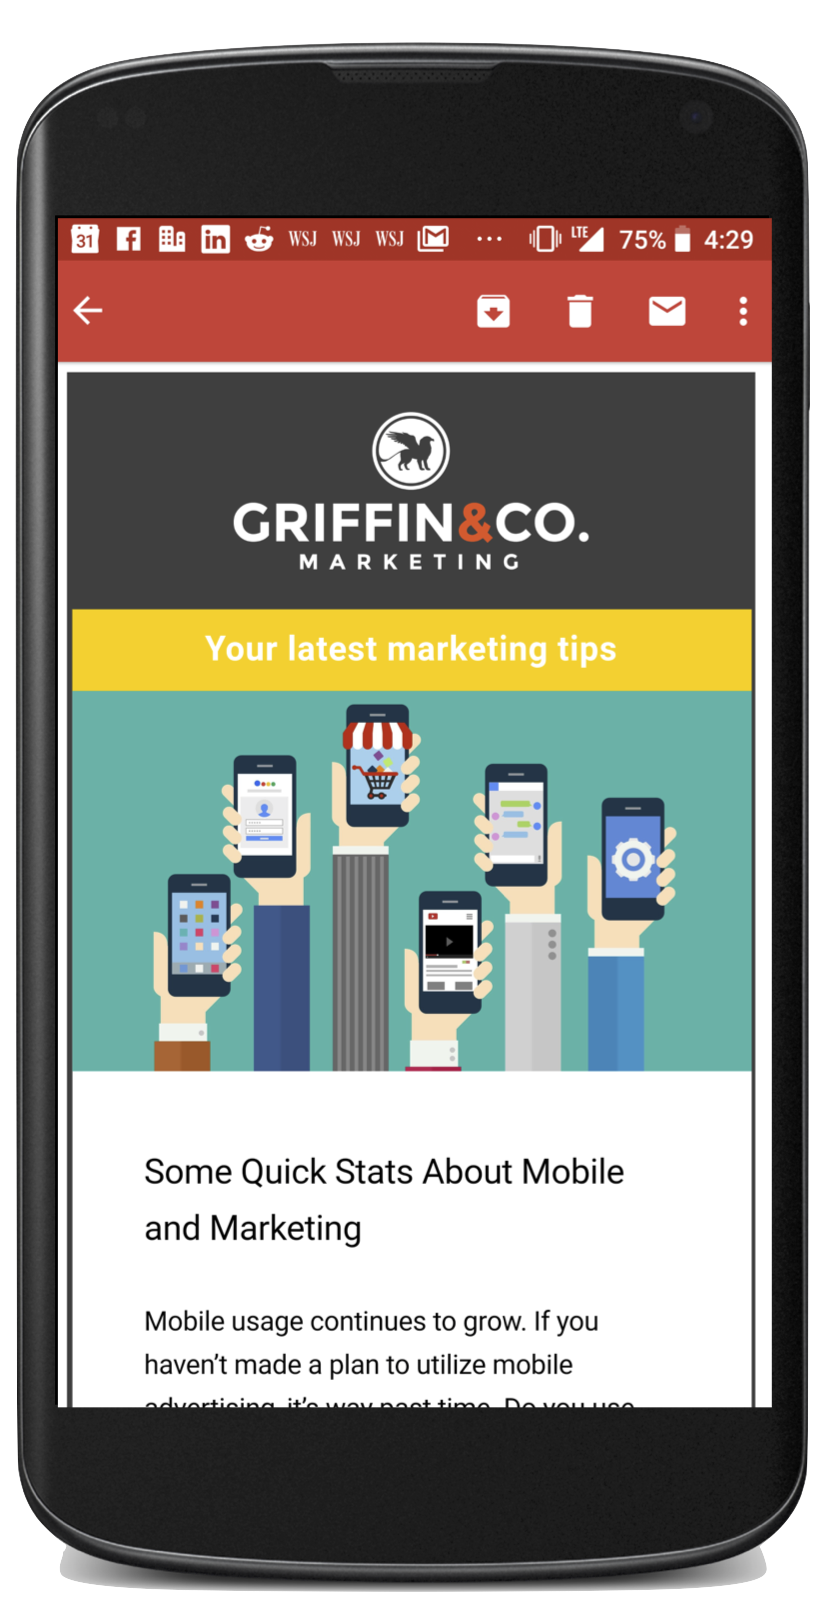 squarespace mobile email marketing griffin and co.png